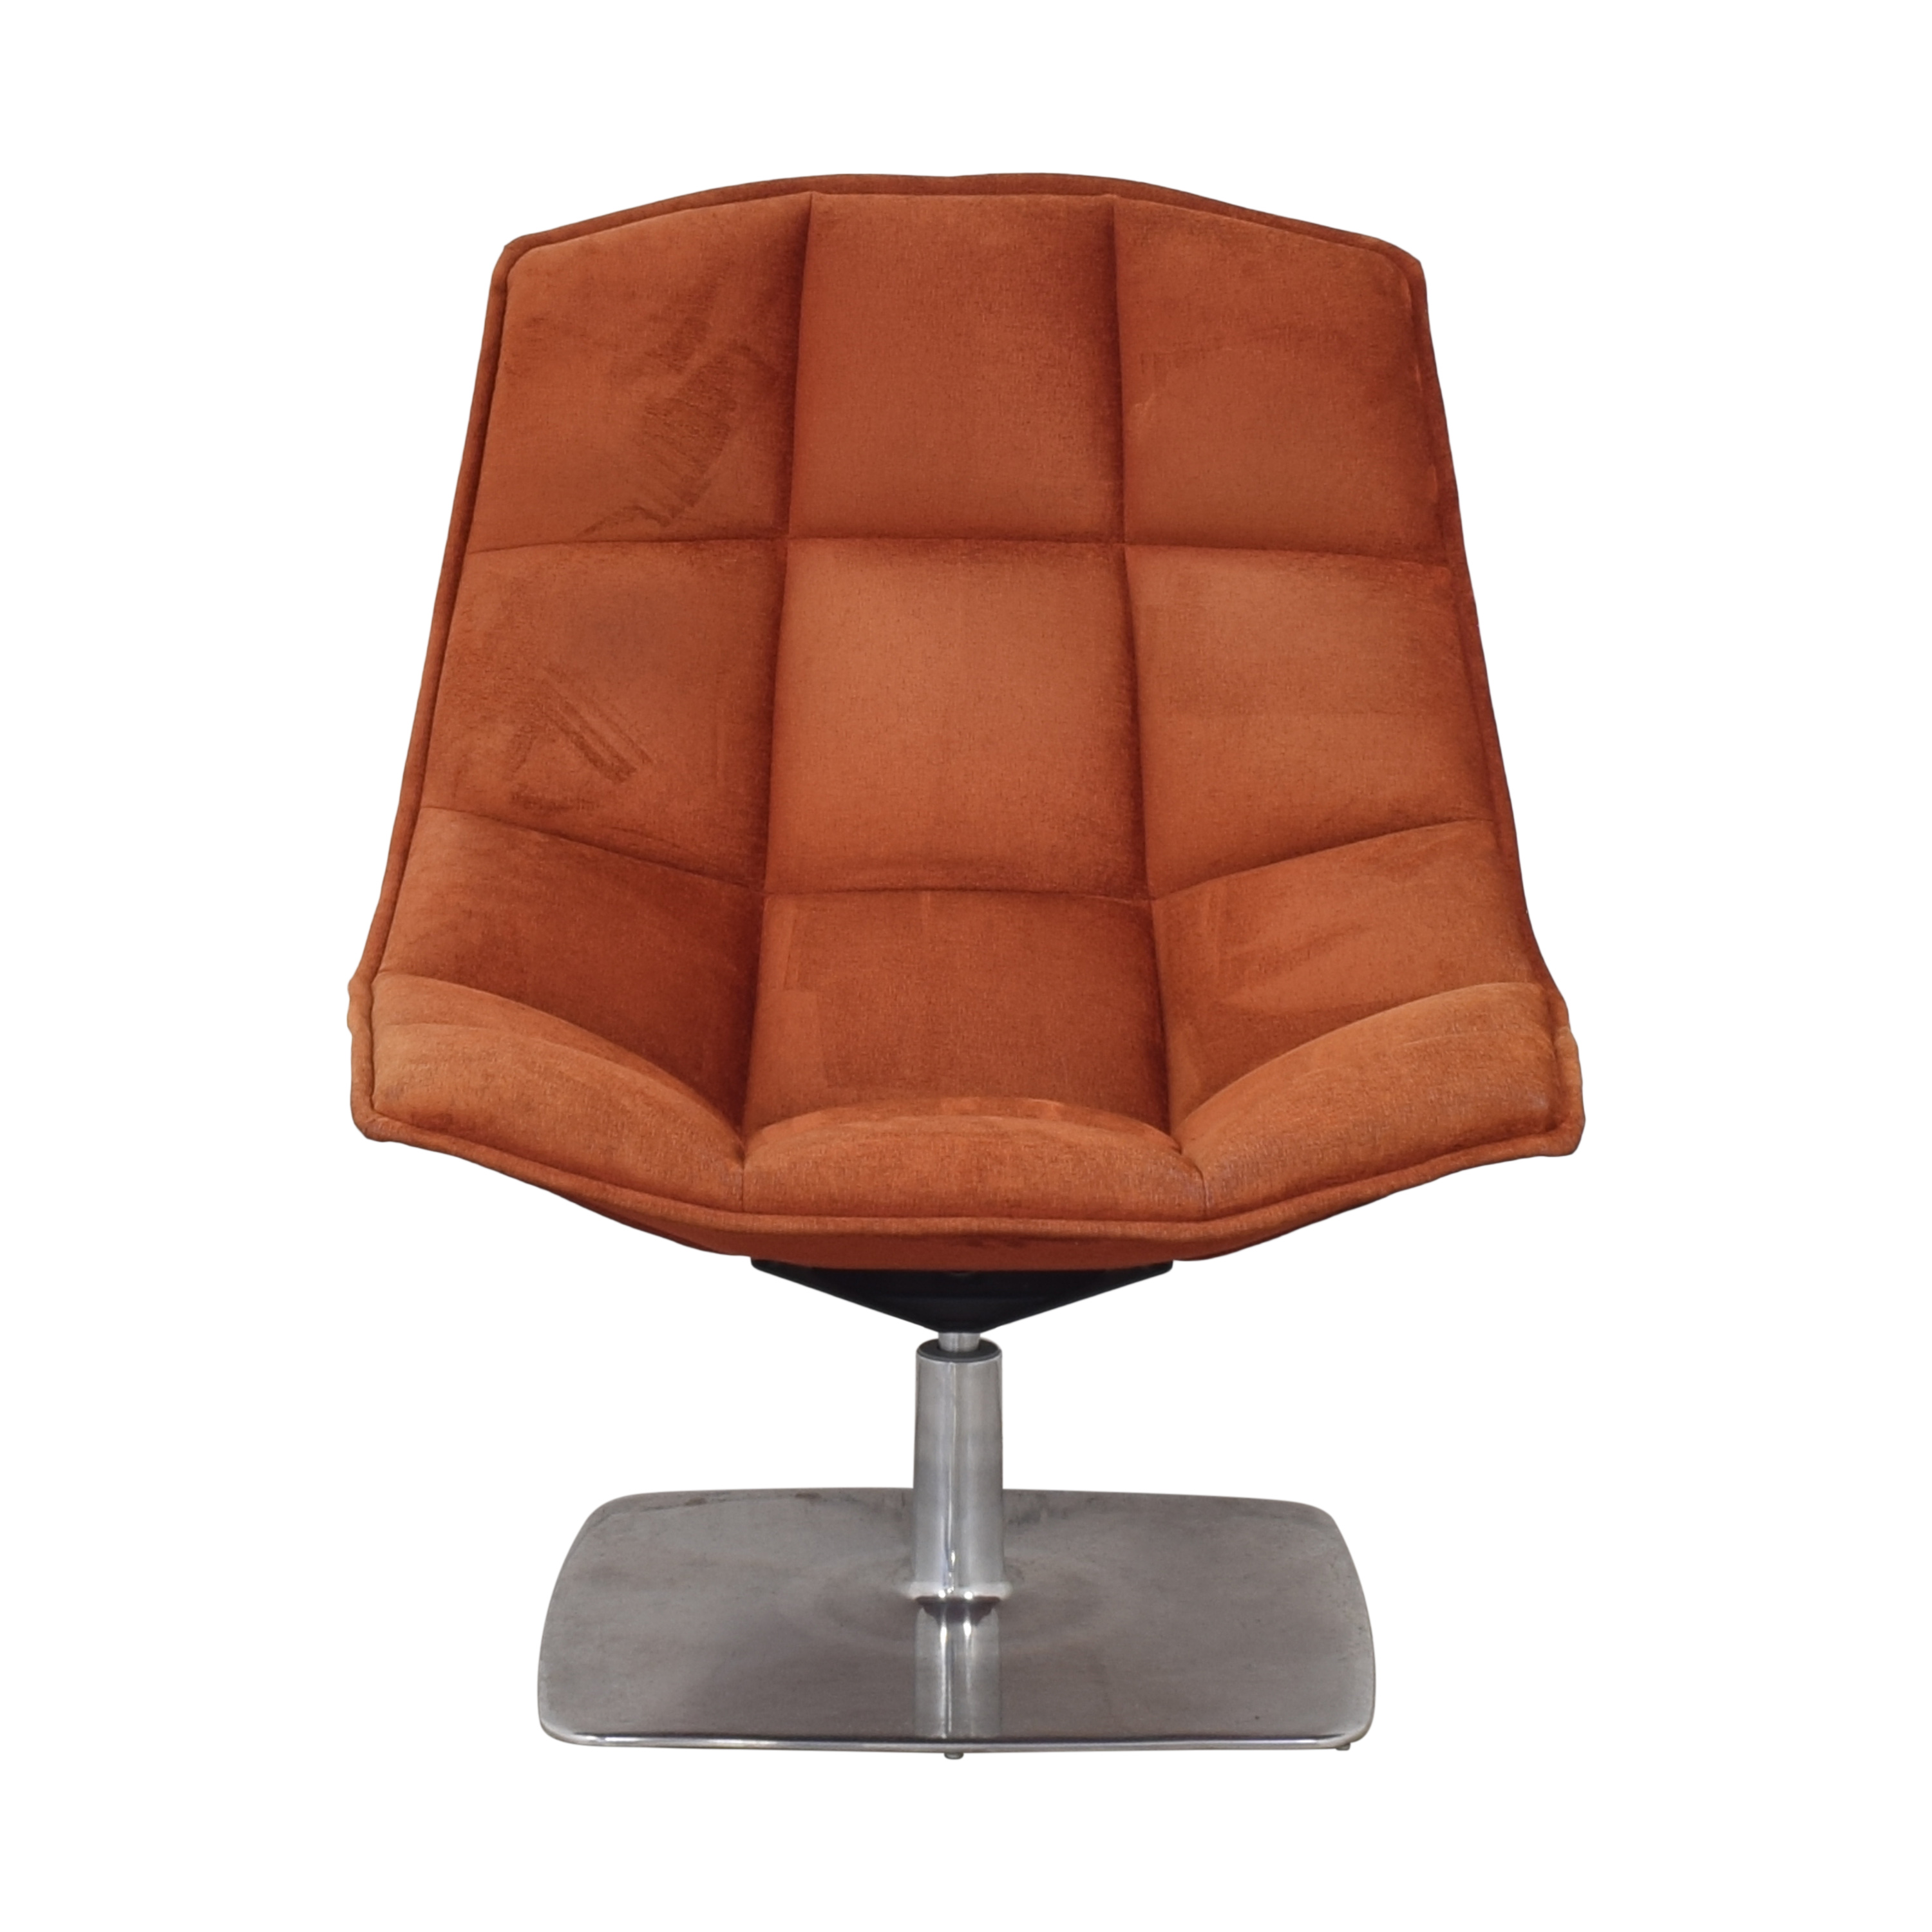 buy Knoll Knoll Jehs+Laub Lounge Chair online